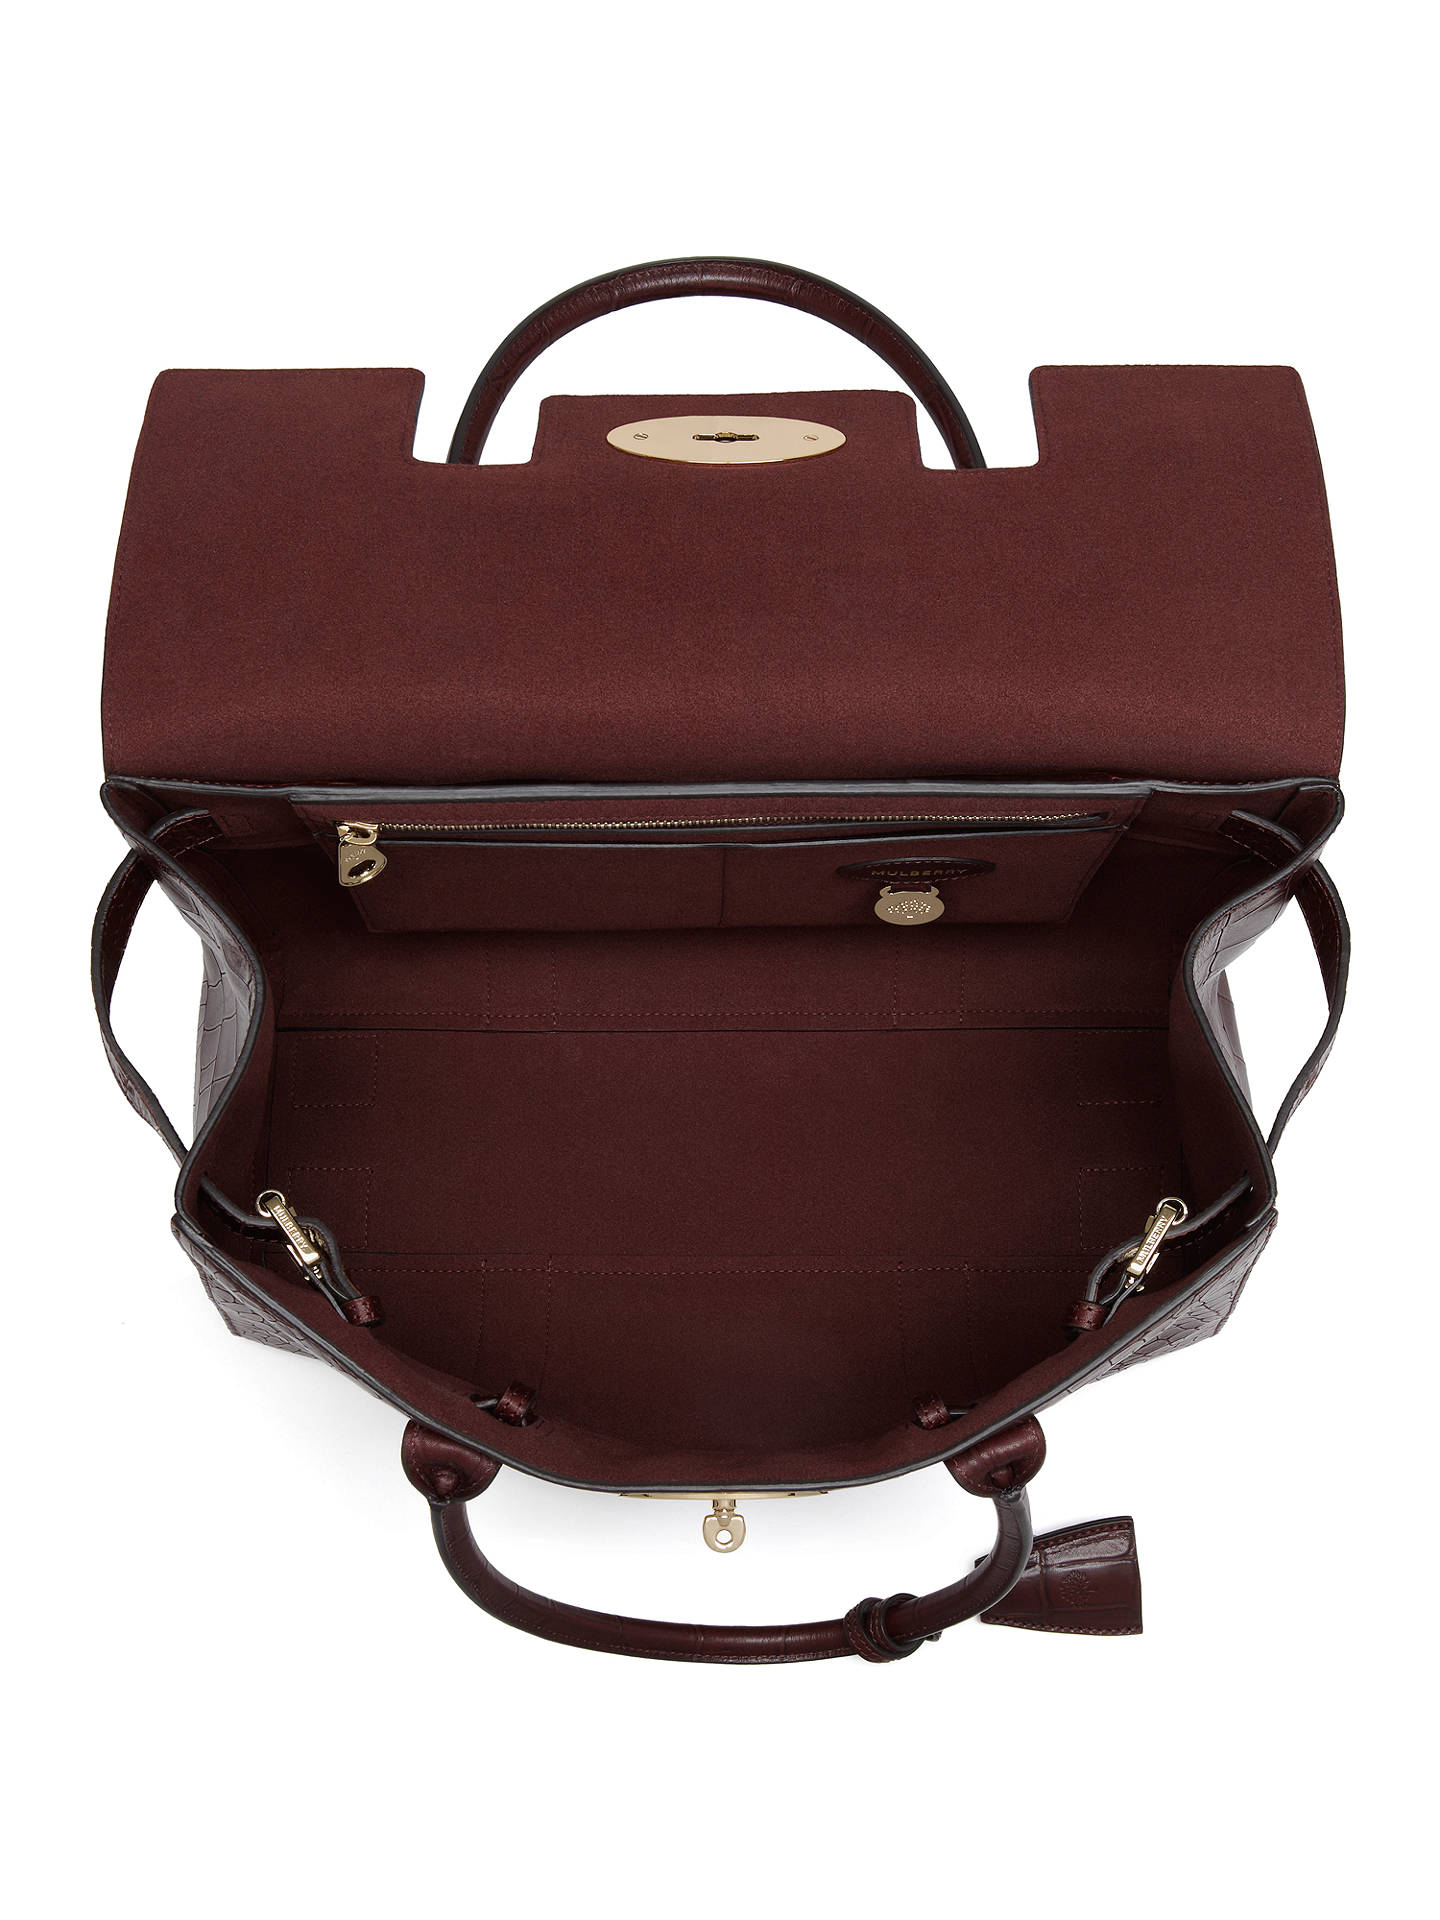 234a9842b0 ... Buy Mulberry Bayswater Croc Print Leather Tote, Oxblood Online at  johnlewis.com ...